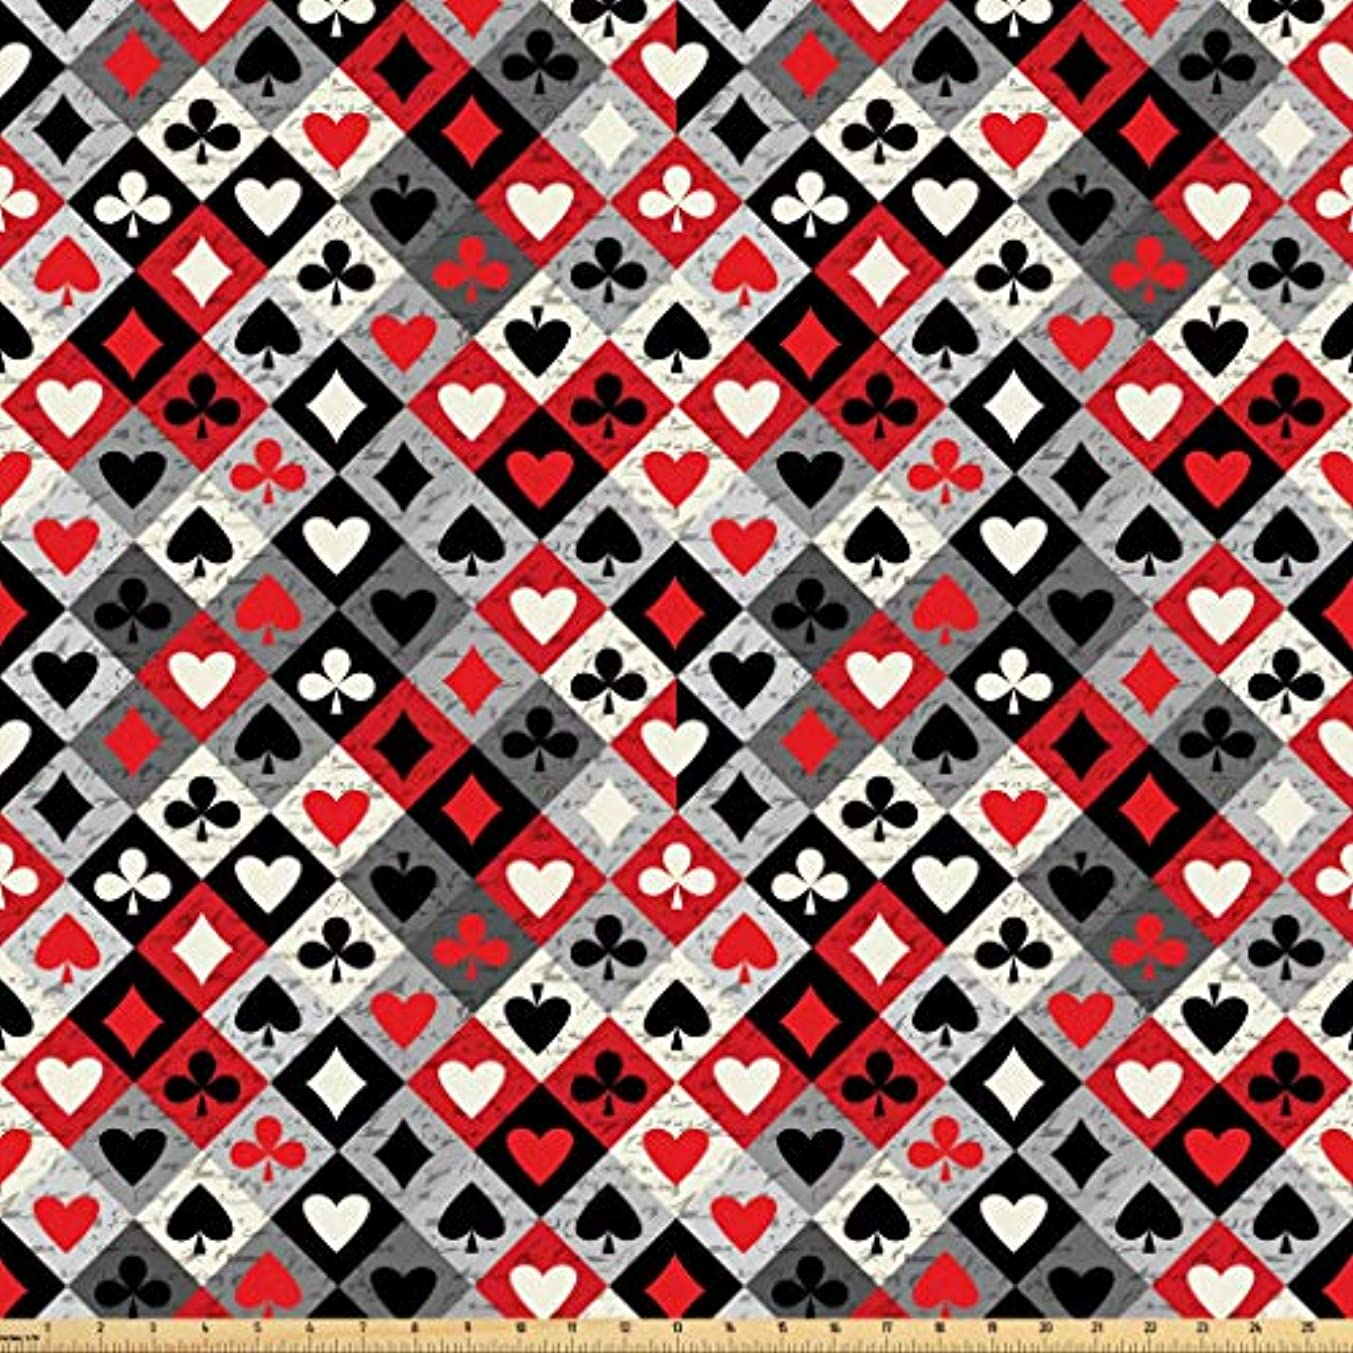 Lunarable Casino Fabric by The Yard, Checkered Rhombus Pattern with Playing Card Icons Grunge Display Gaming Club Theme, Microfiber Fabric for Arts and Crafts Textiles & Decor, 1 Yard, Multicolor